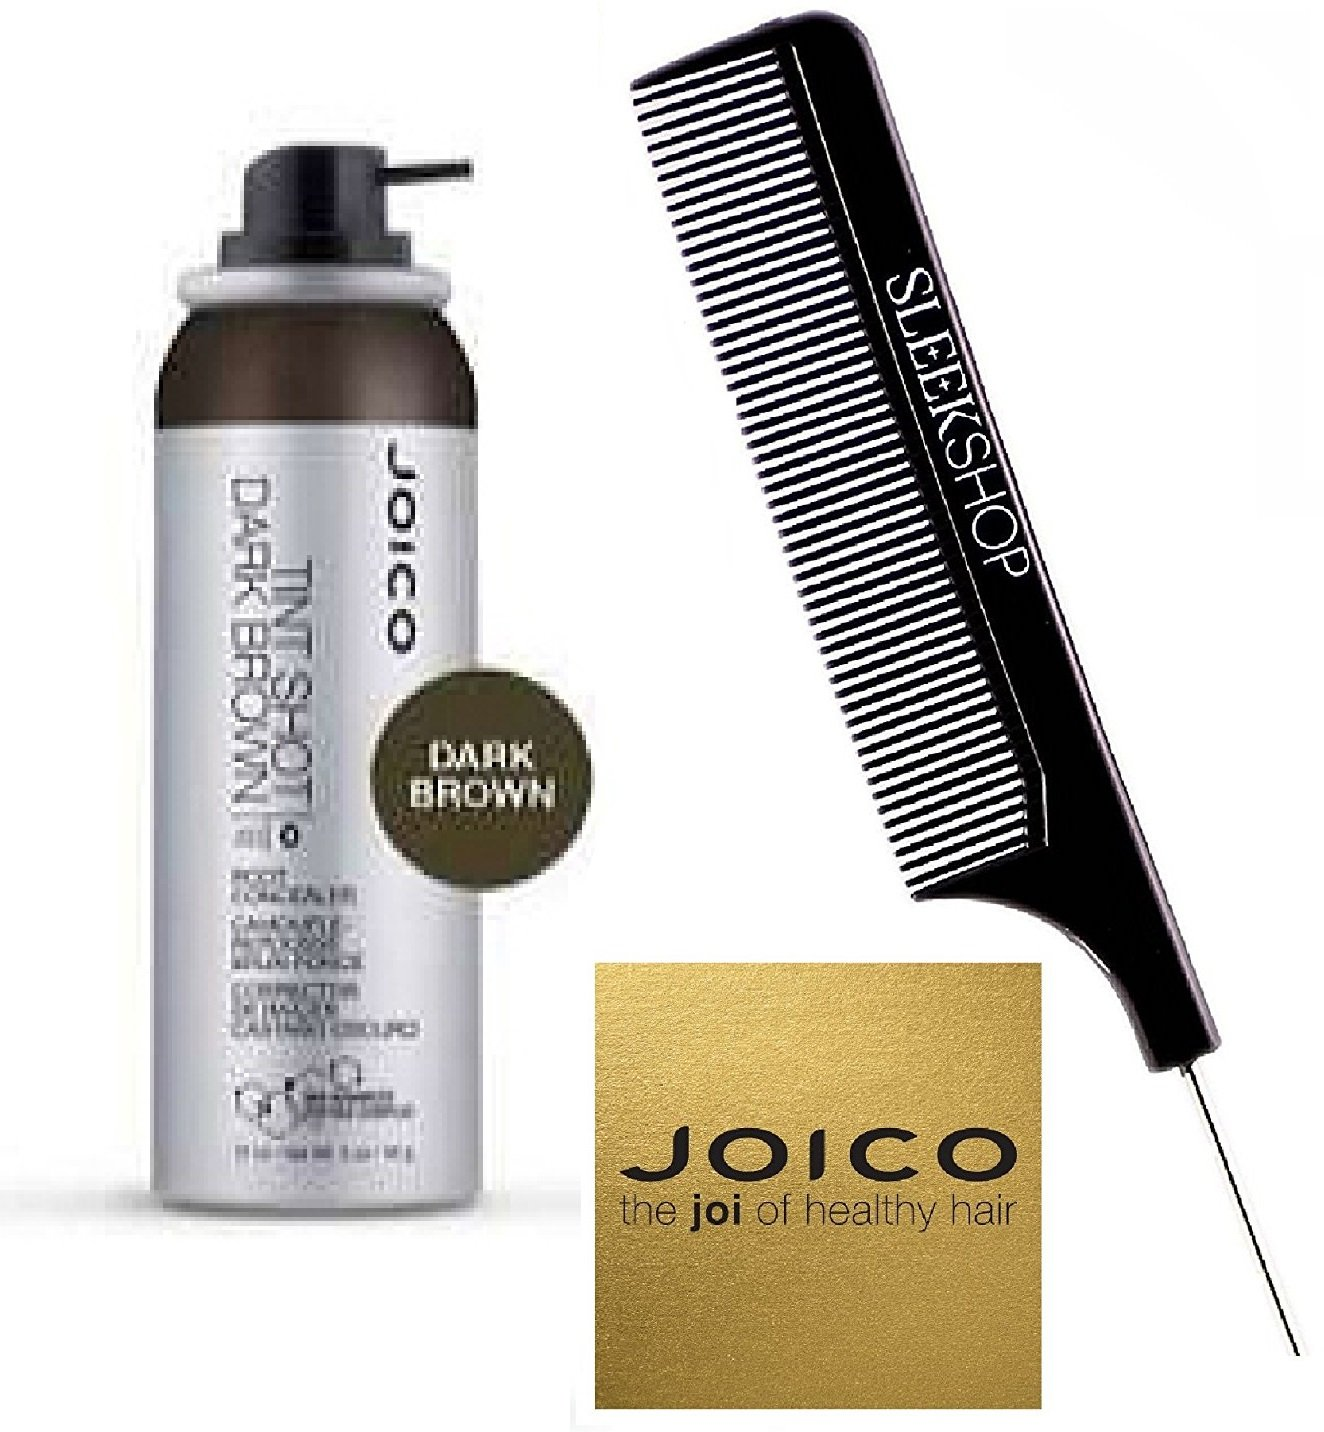 Joico TINT SHOT Root Concealer, Bio-Advanced Peptide Complex (with Sleek Steel Pin Tail Comb) (Dark Brown, 2 oz)